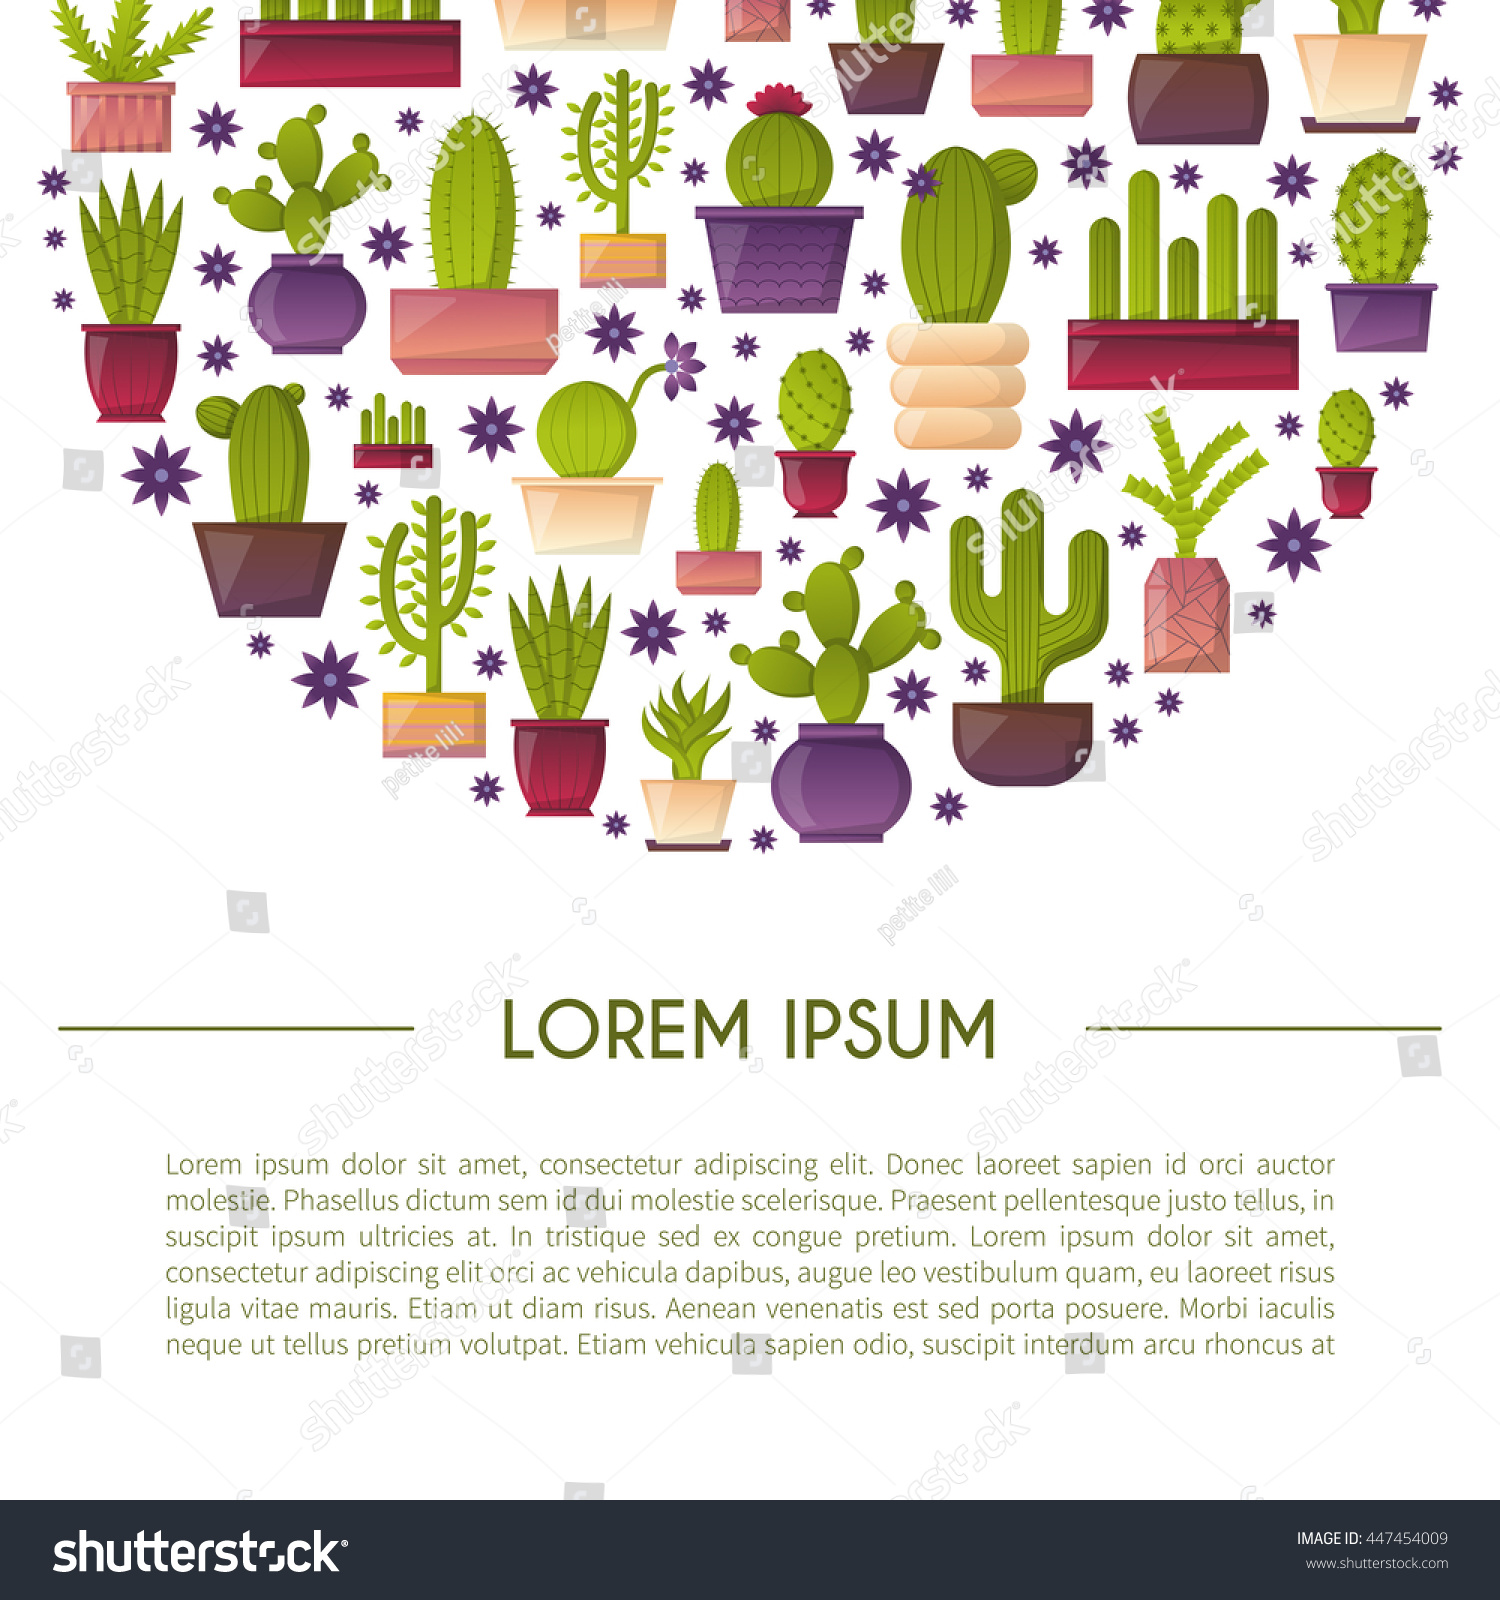 vector illustration cartoon isolated cactus vector stock vector vector illustration with cartoon isolated cactus vector house plant in flowerpot home interior background